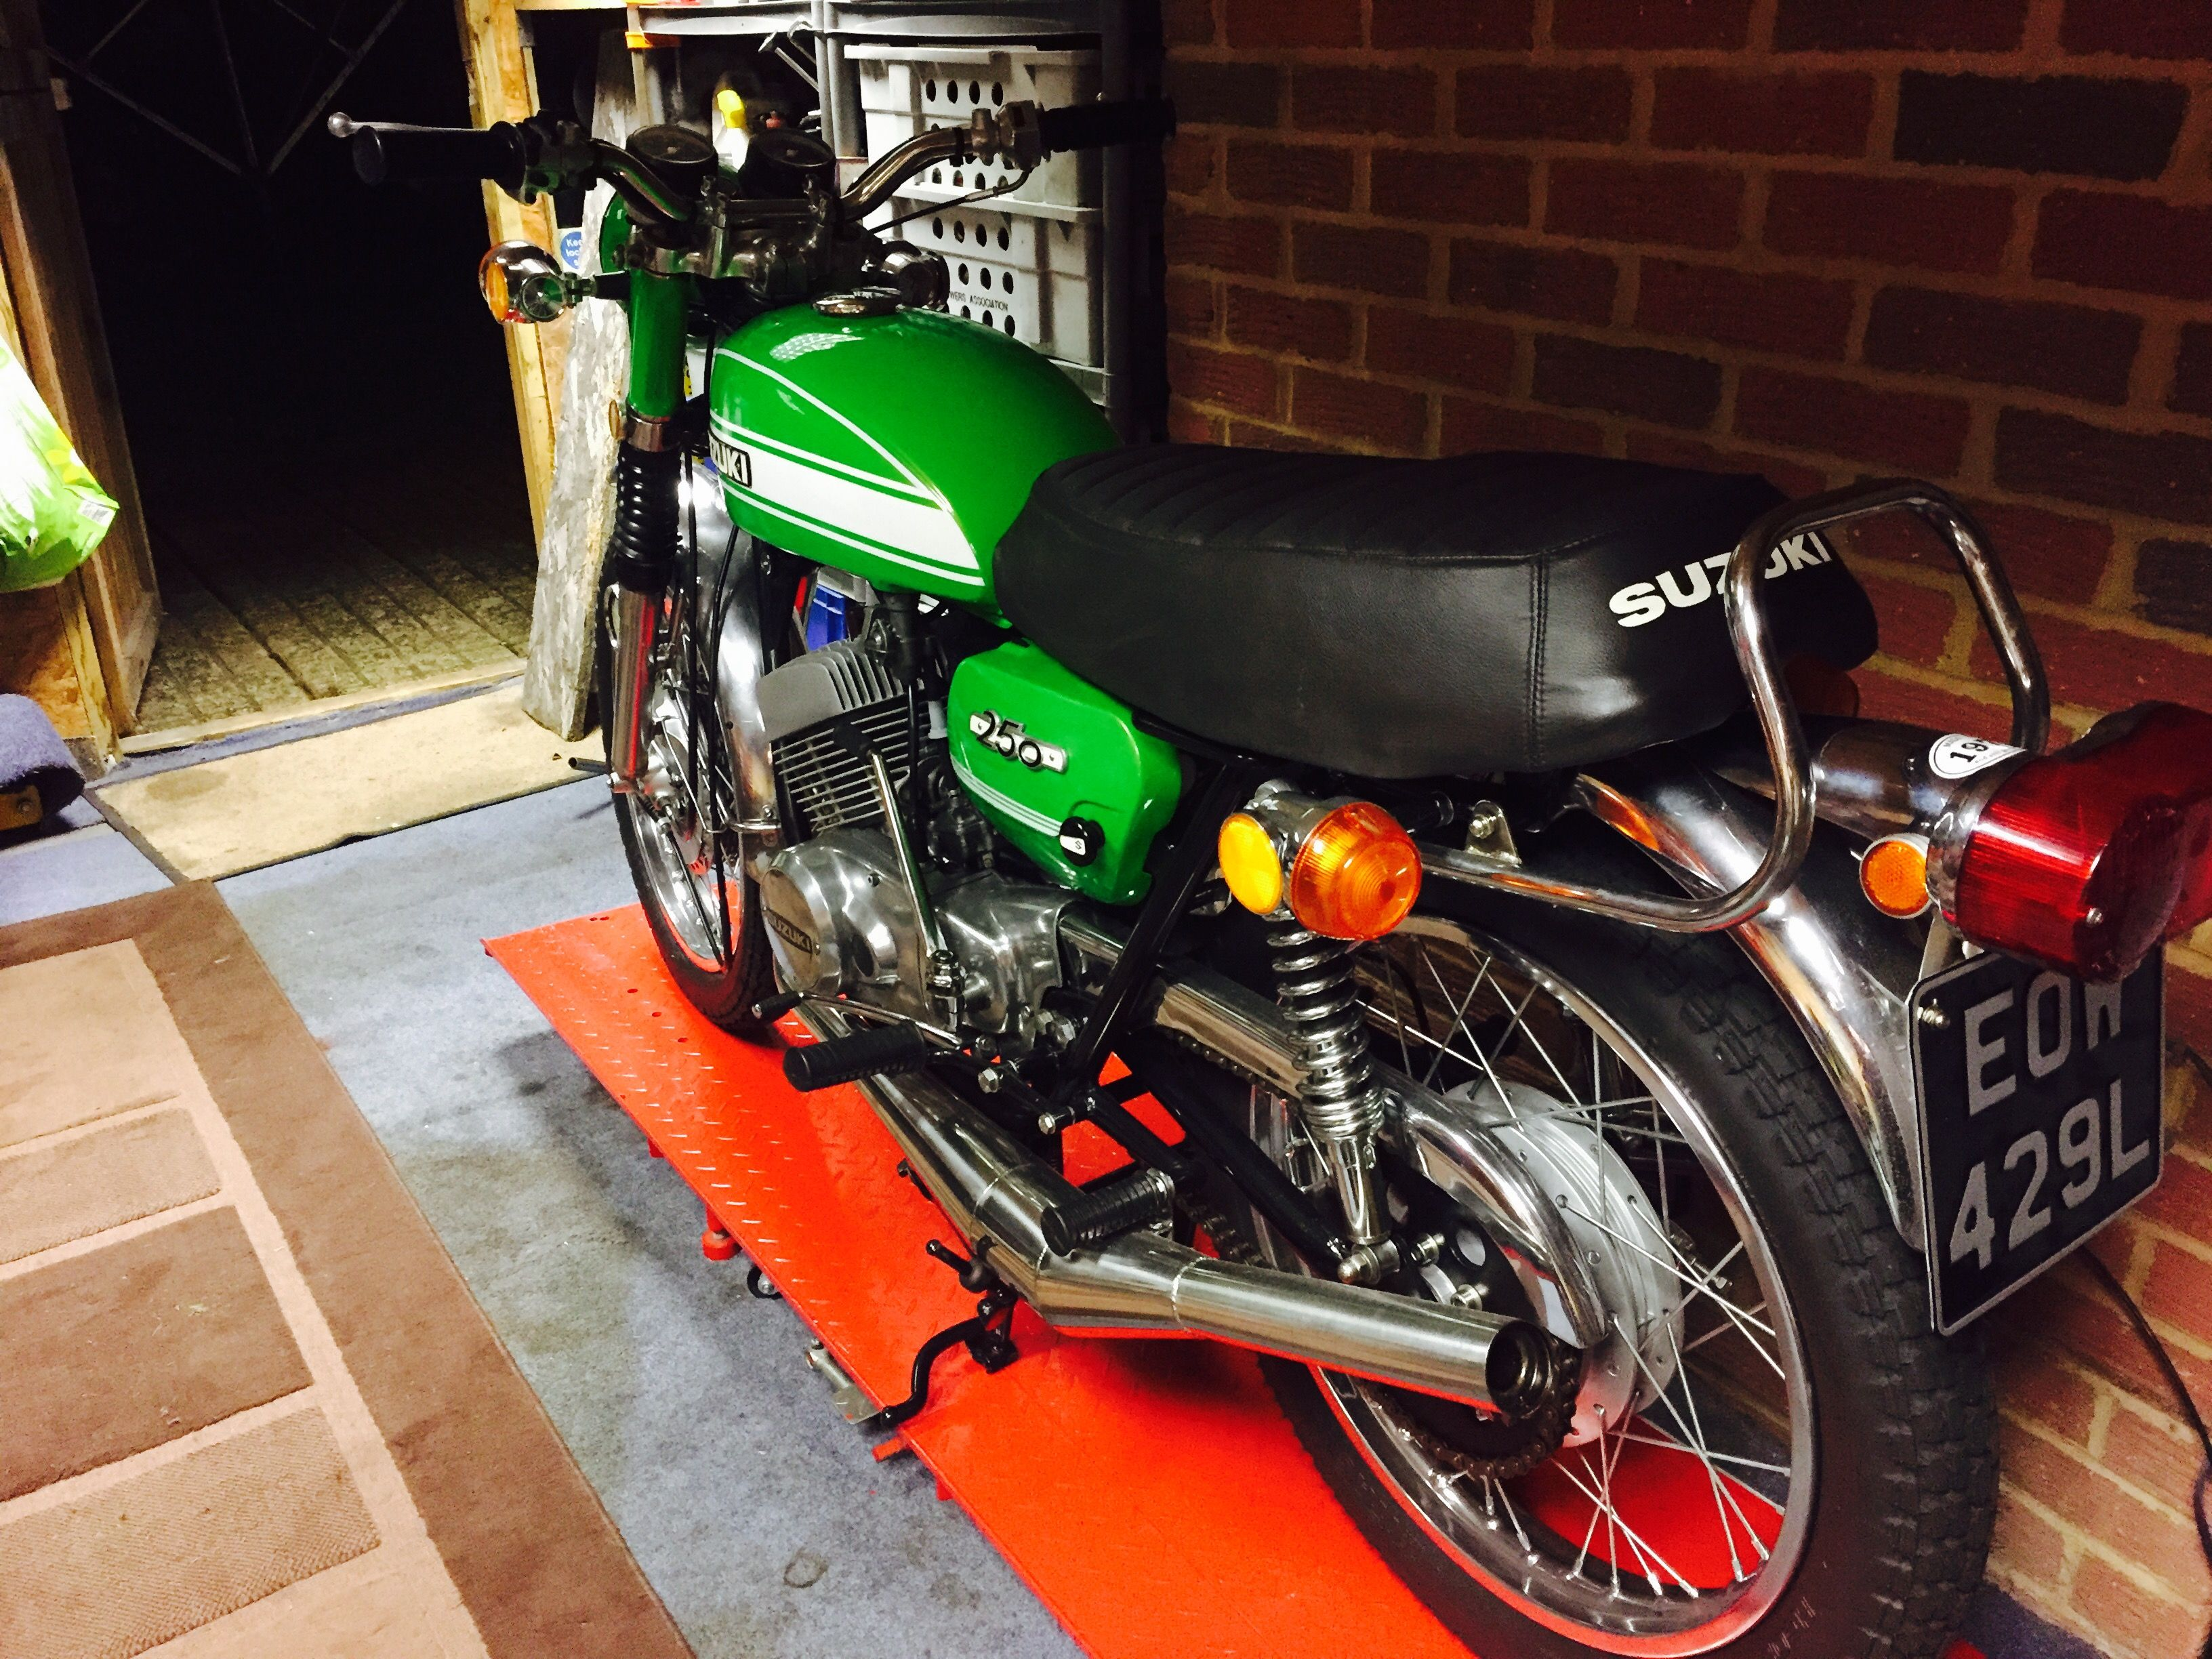 suzuki t250 t350 r t500 large colour wiring diagrams index listing on motorcycle tow hitches  [ 3264 x 2448 Pixel ]